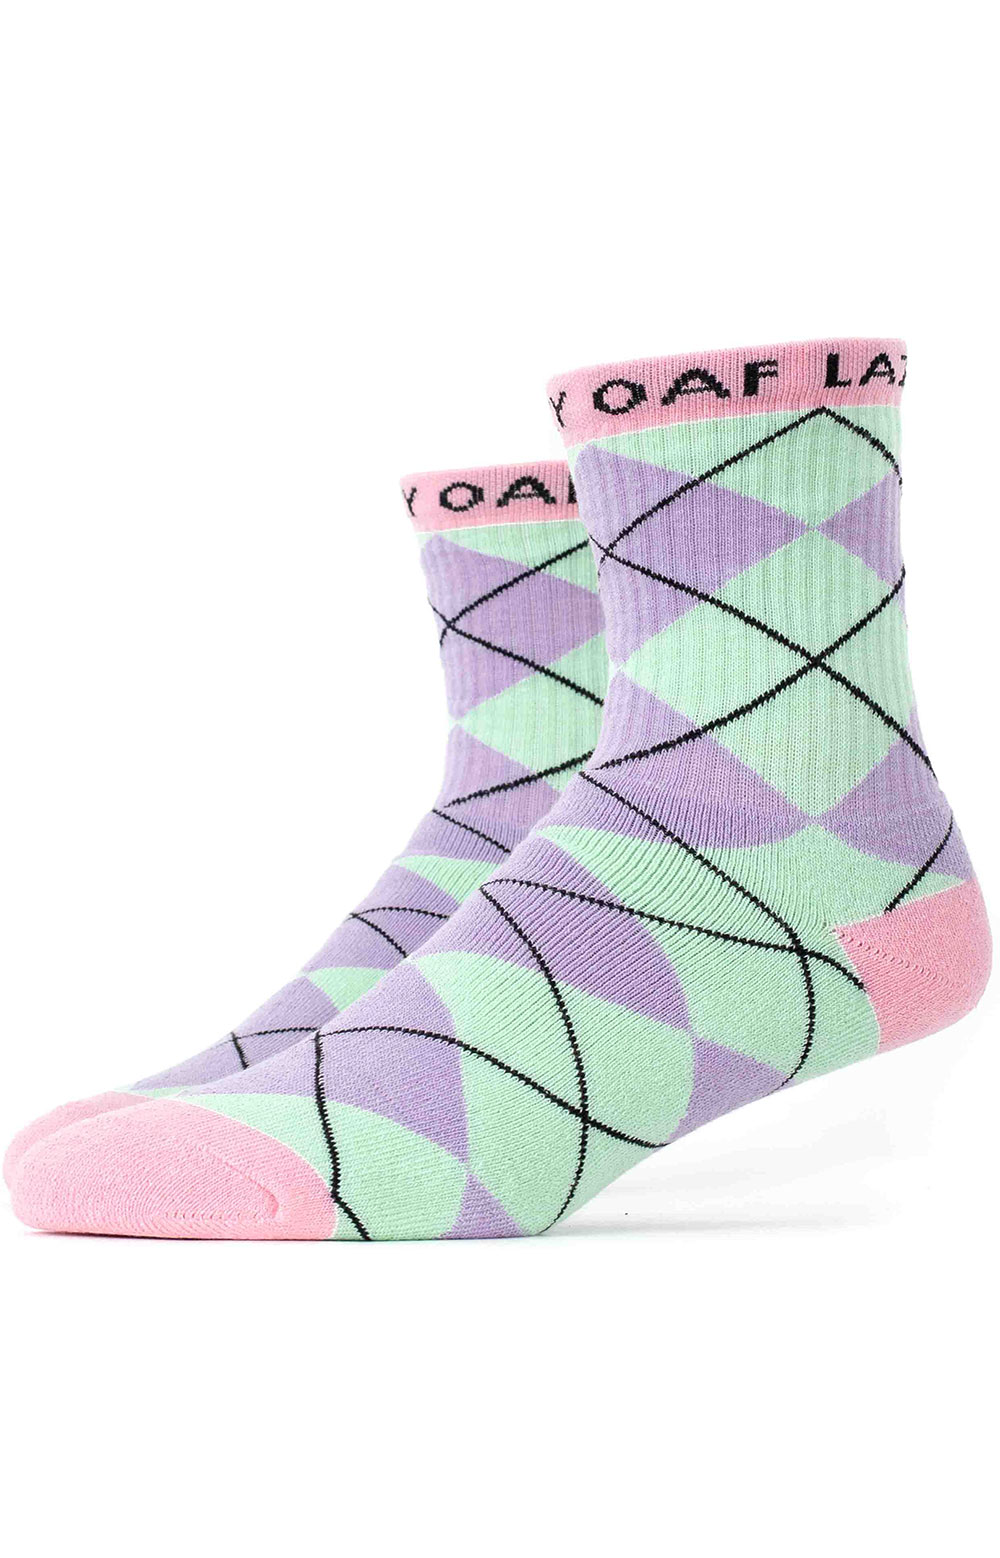 Lazy Argyle Socks